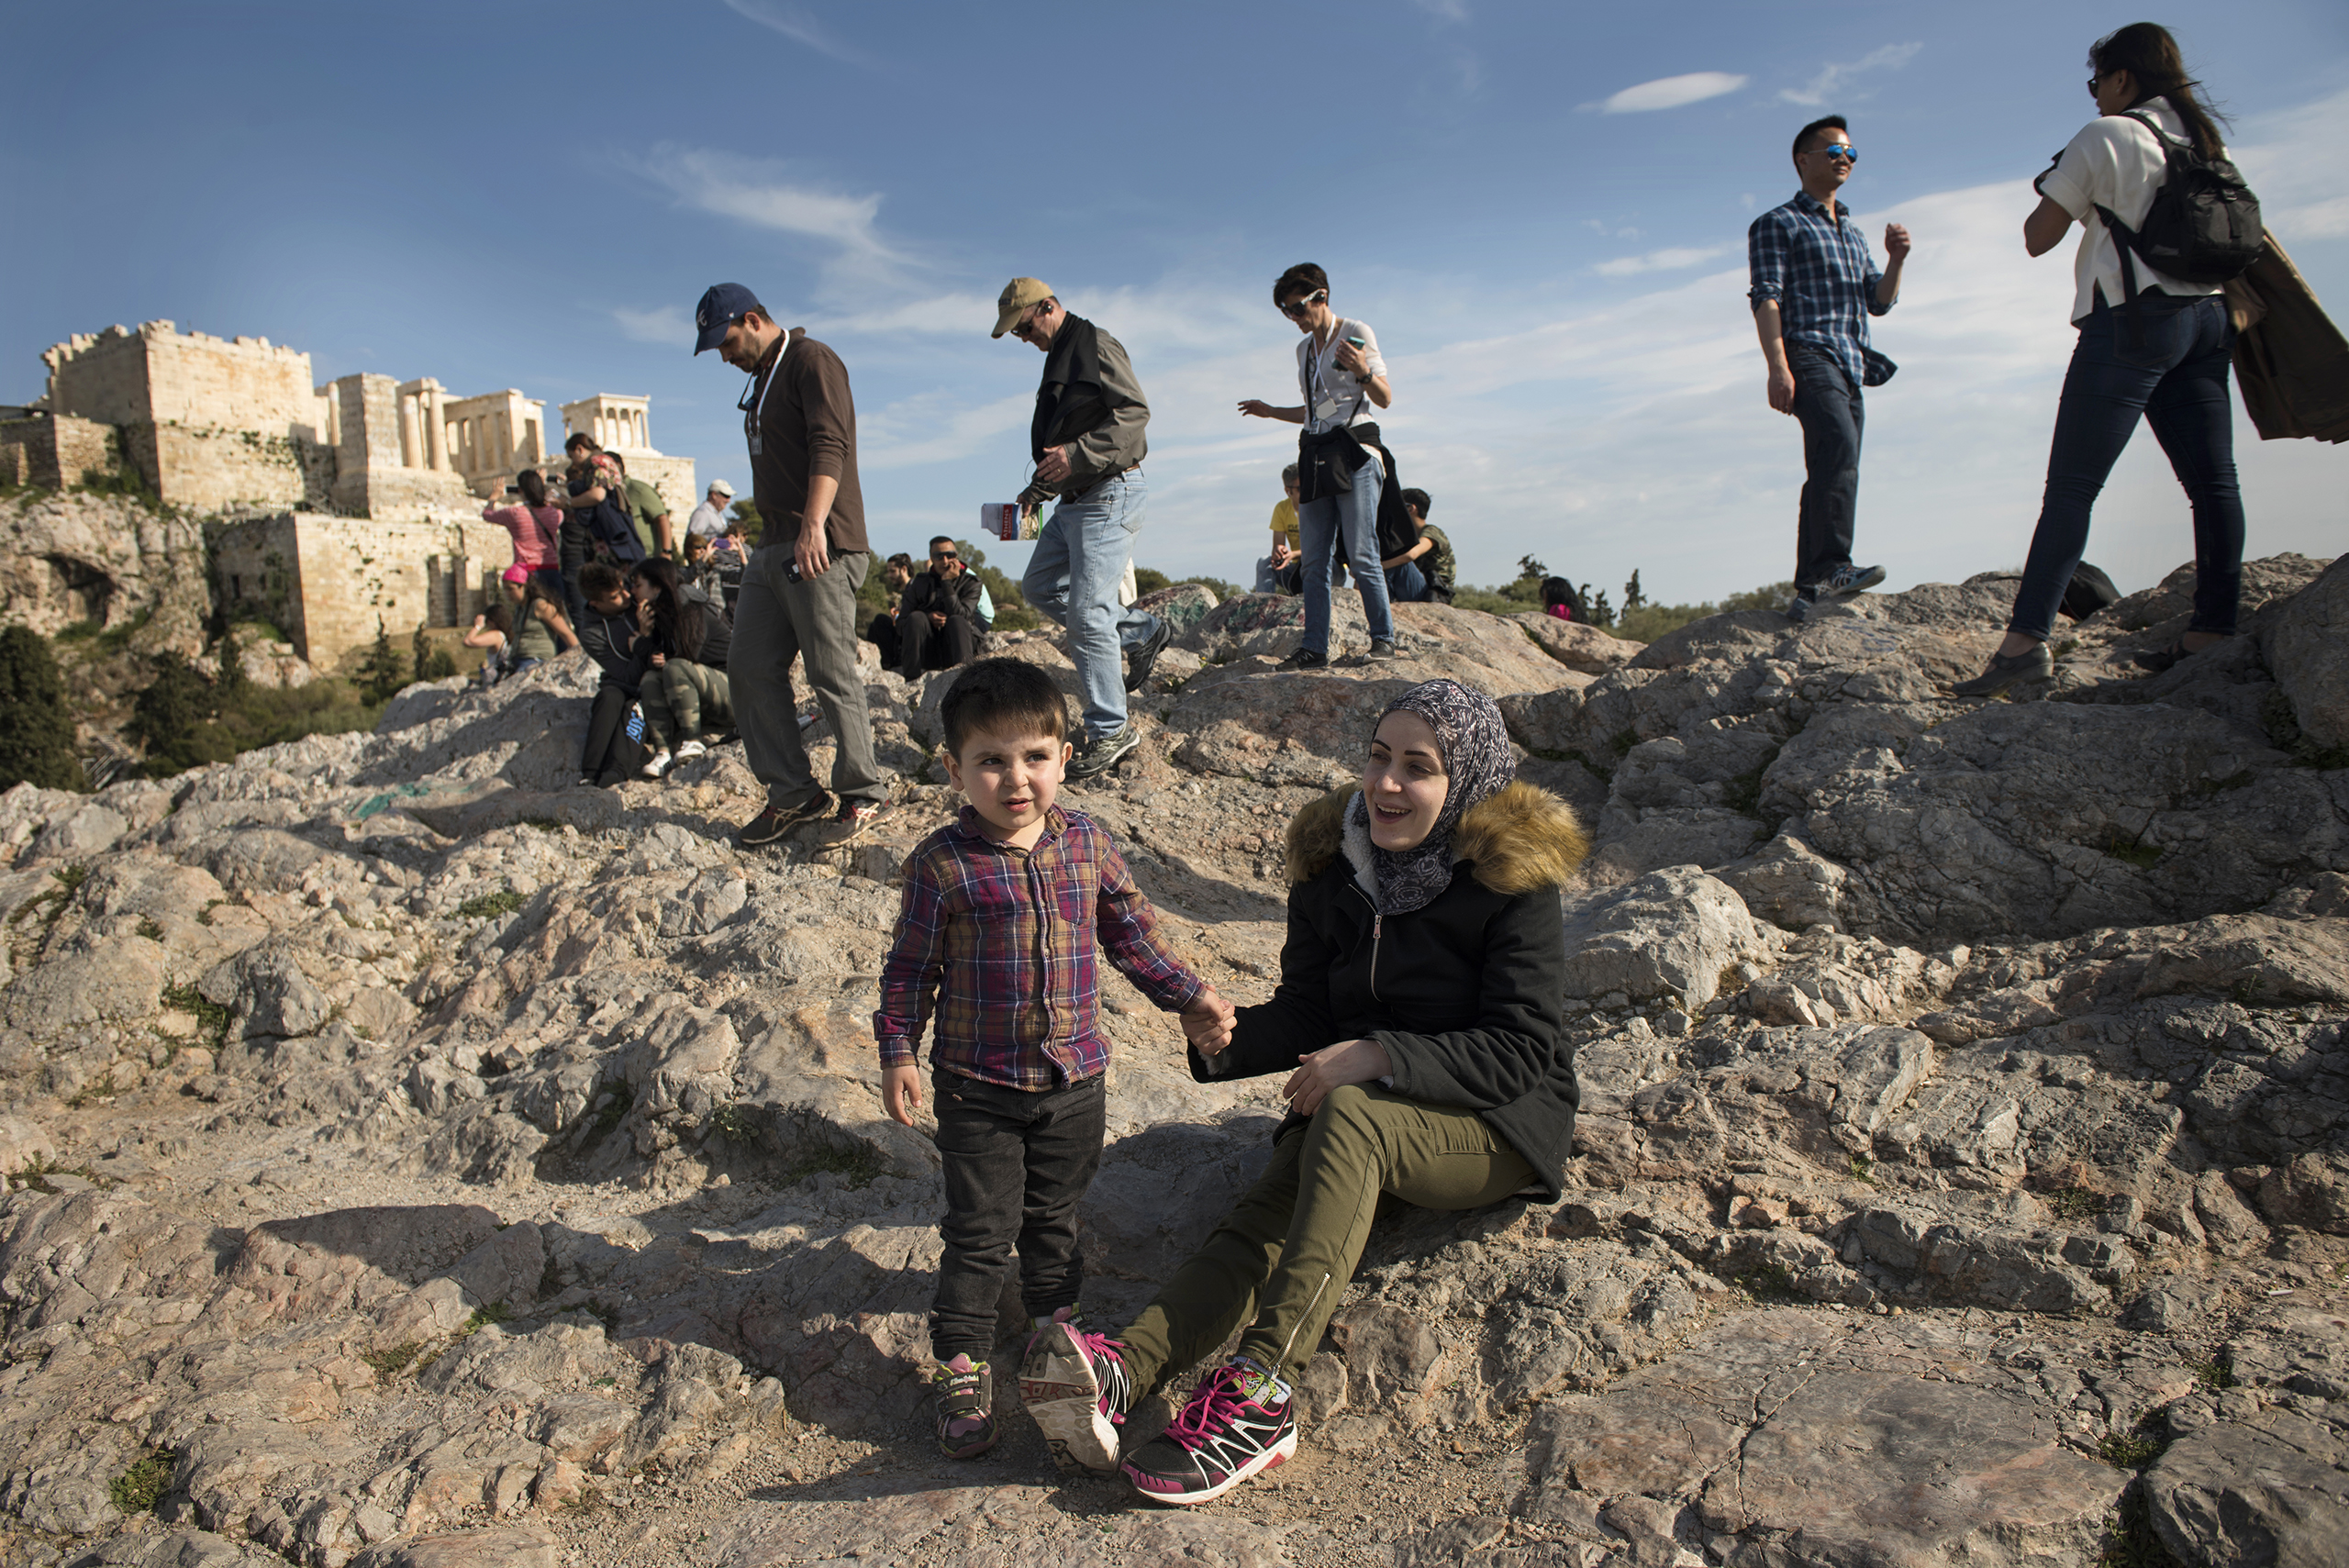 Syrian refugees Taima and her 3 year old son, Wael, walk around the Acropolis in Athens, Greece, March 30, 2017.